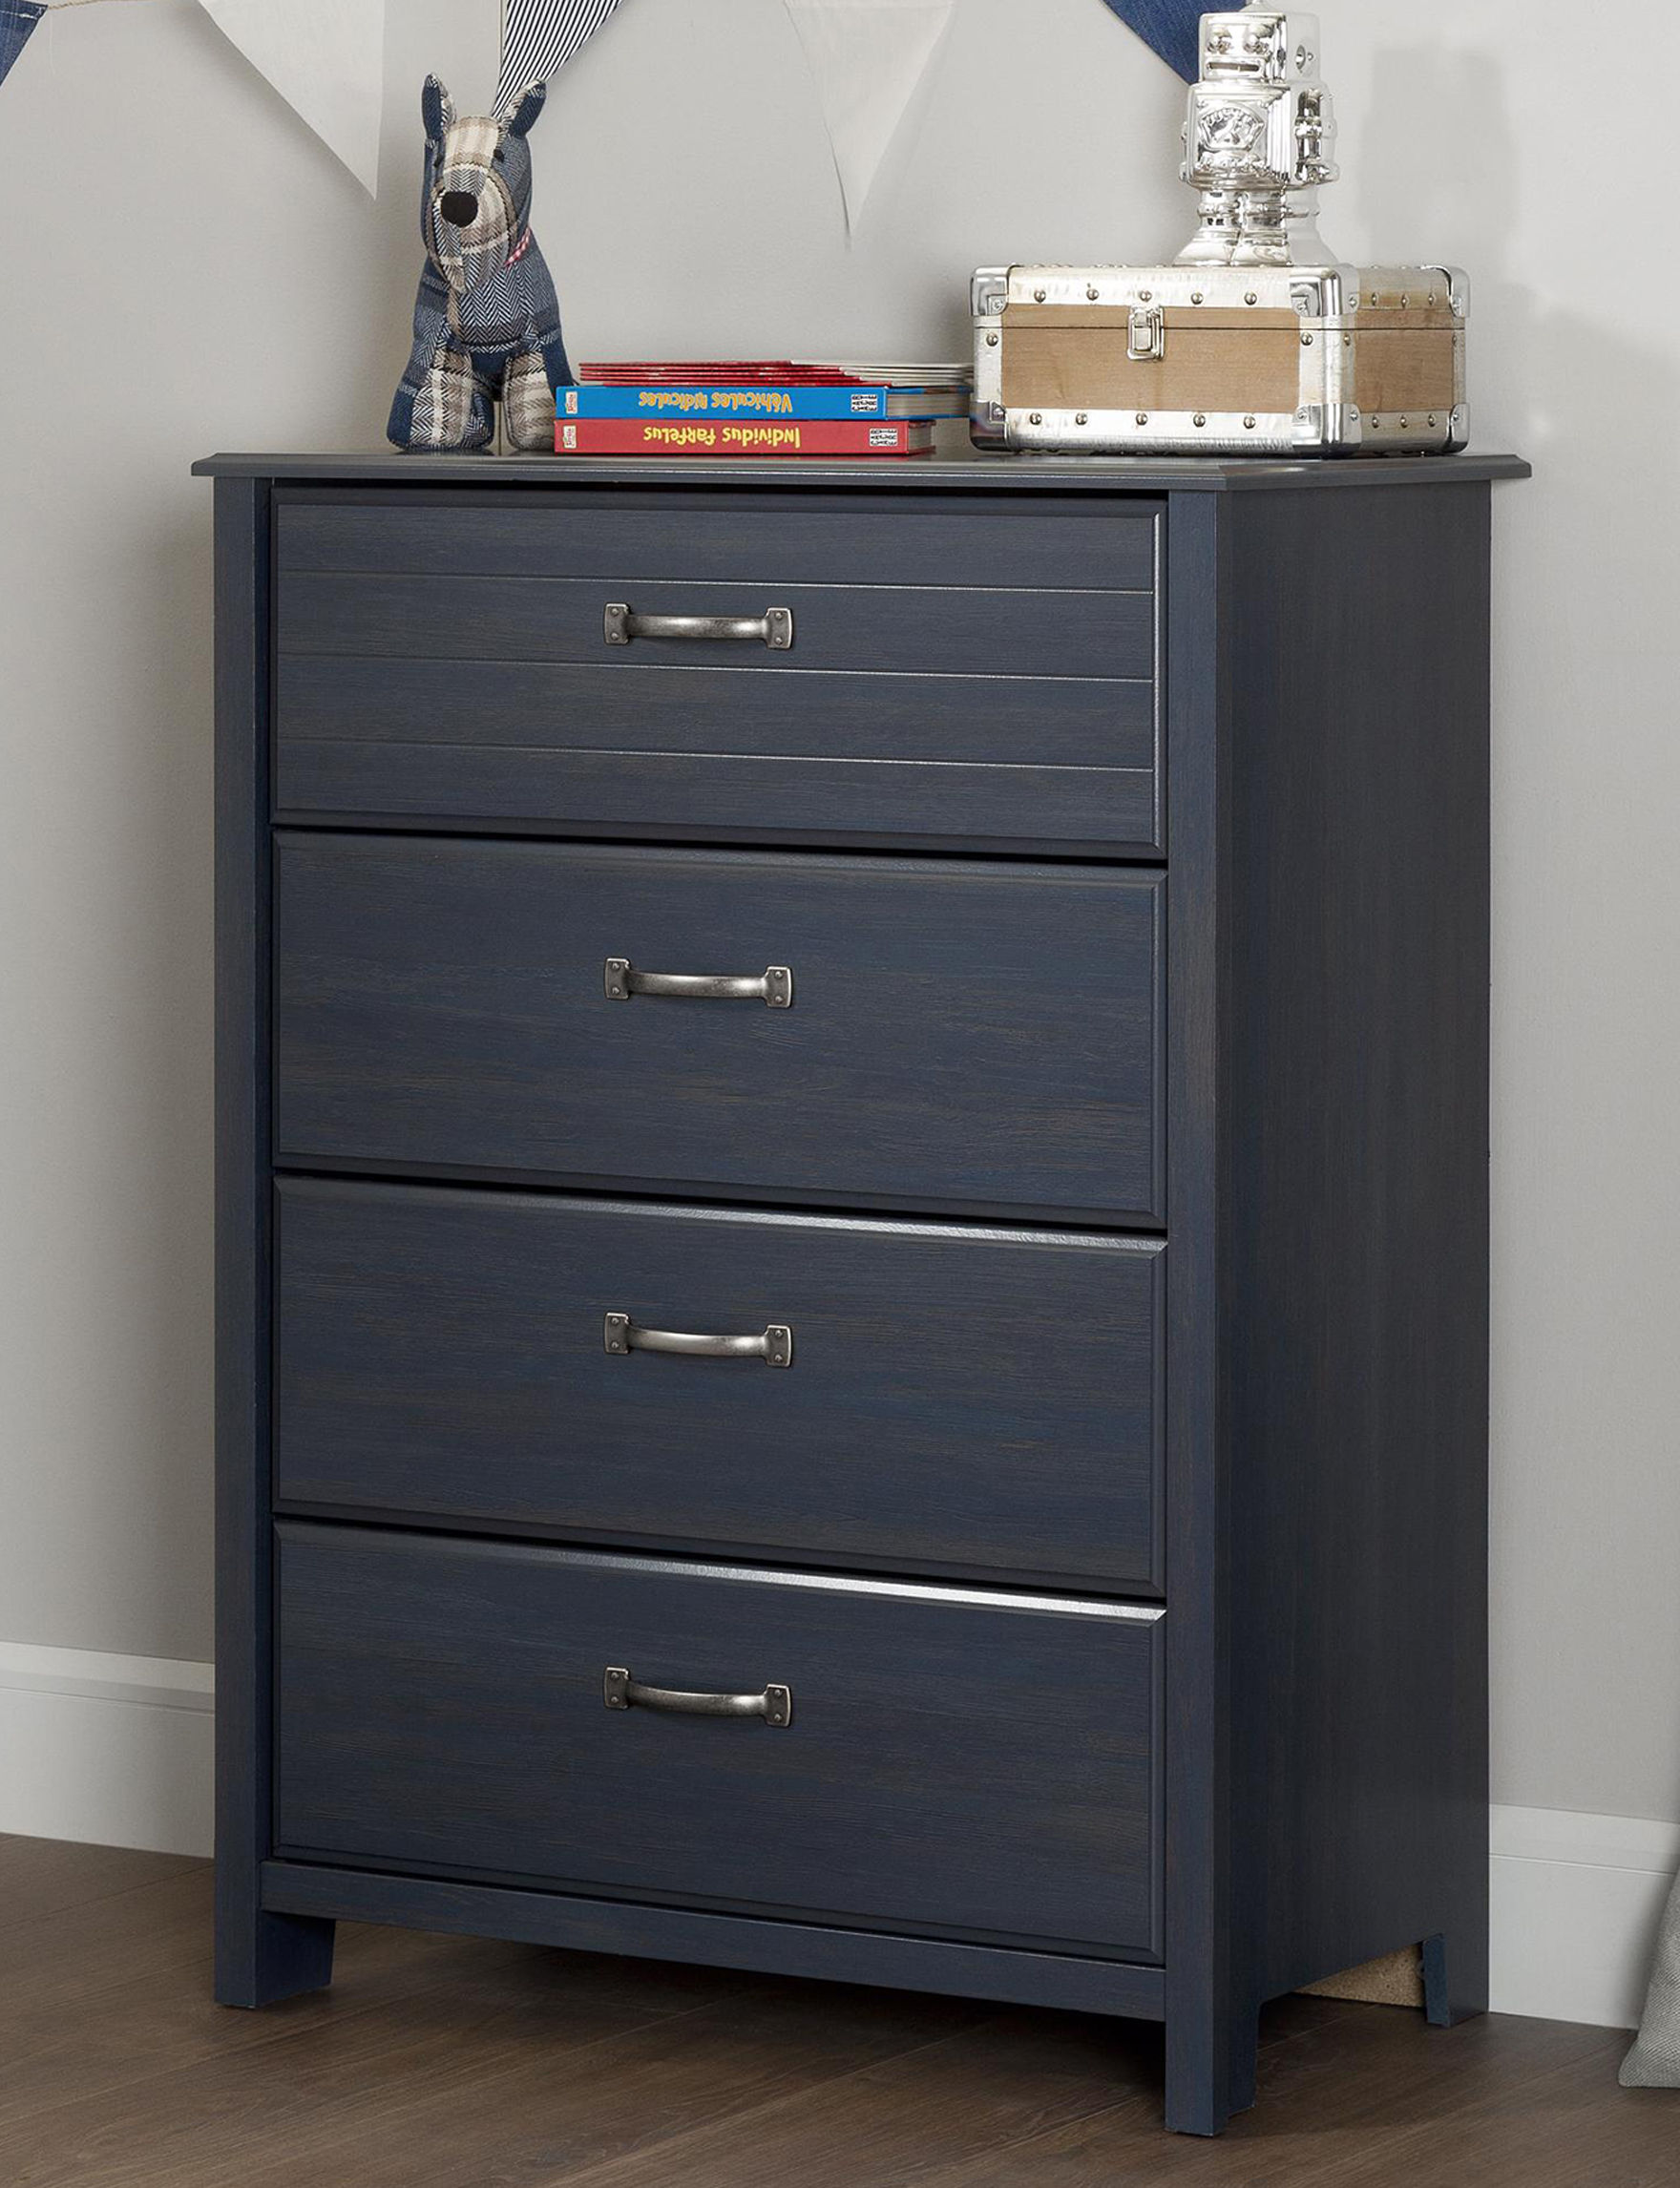 South Shore Blue Dressers & Chests Bedroom Furniture